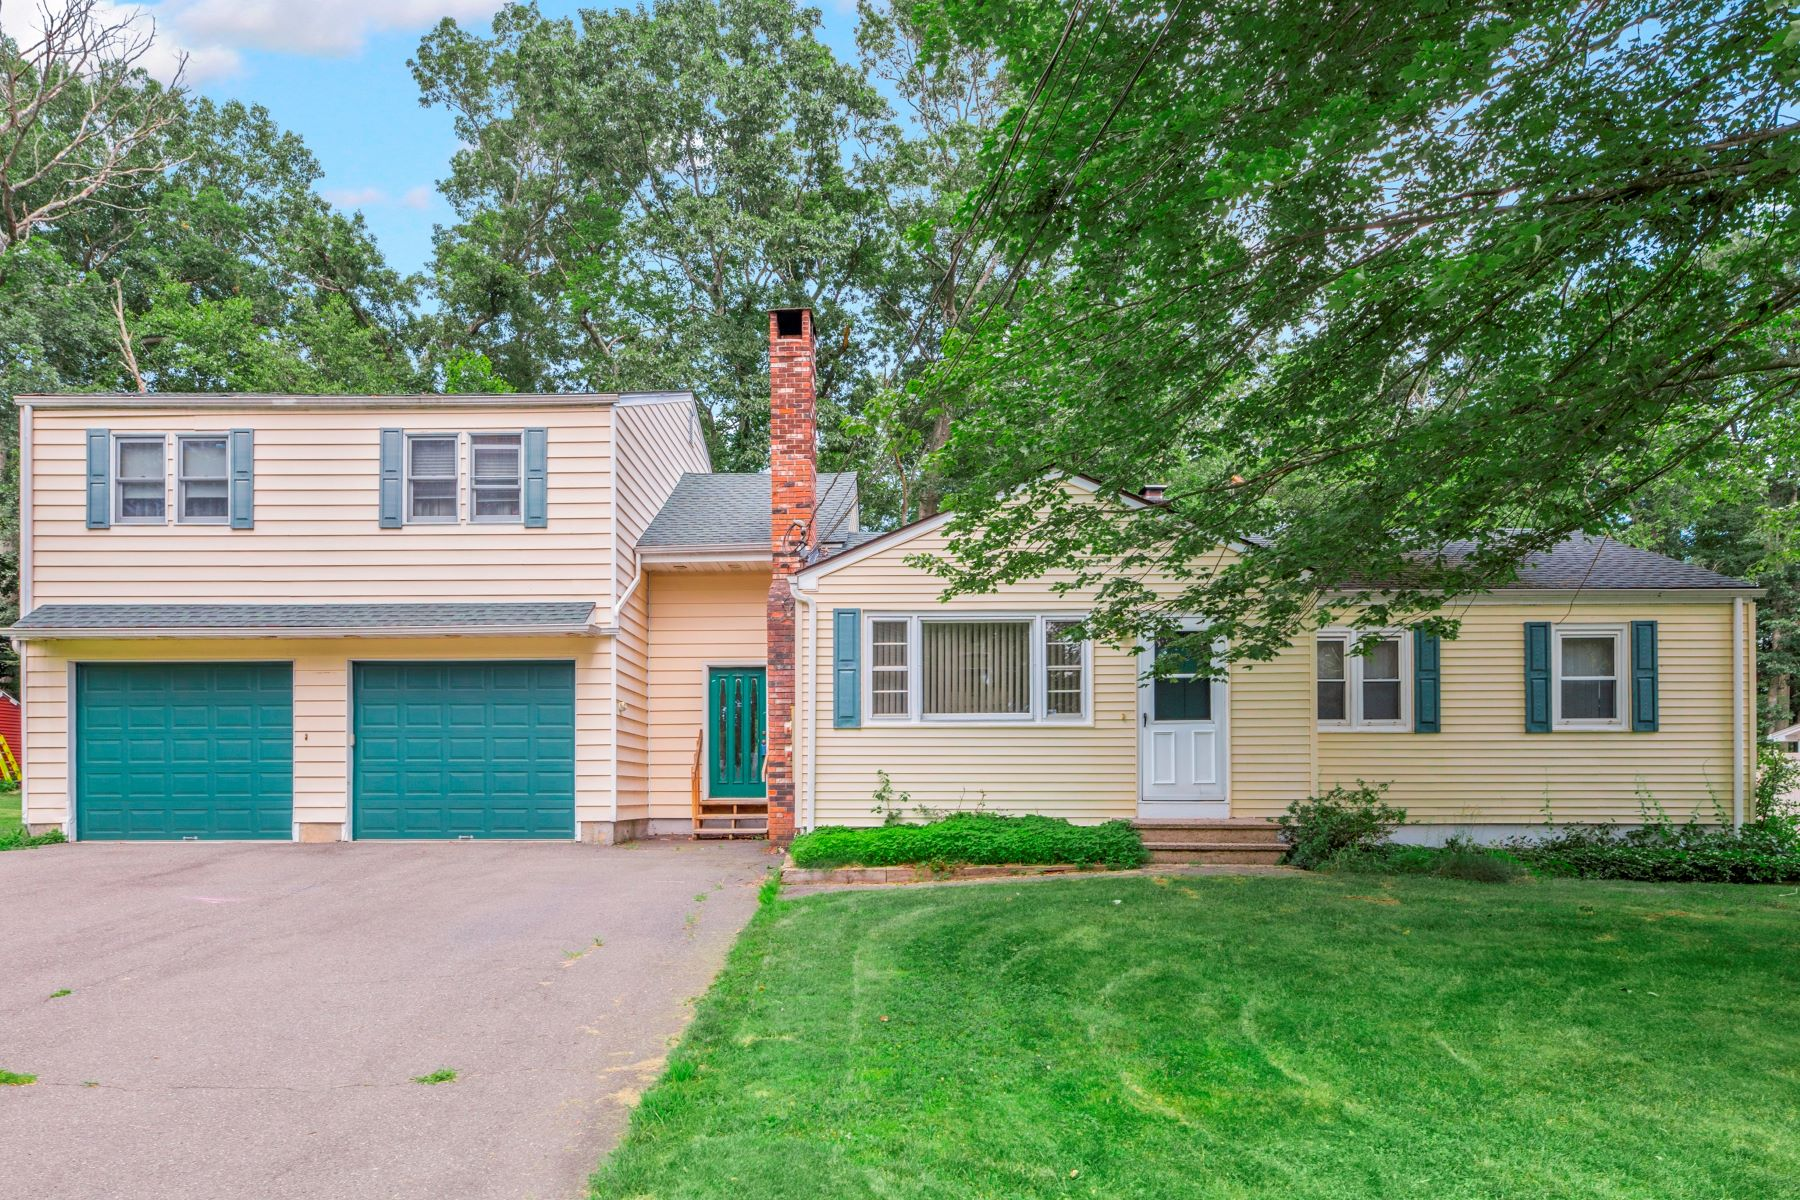 Single Family Homes for Active at Ranch Home with In-Law Apartment 5 Walter Road Seymour, Connecticut 06483 United States